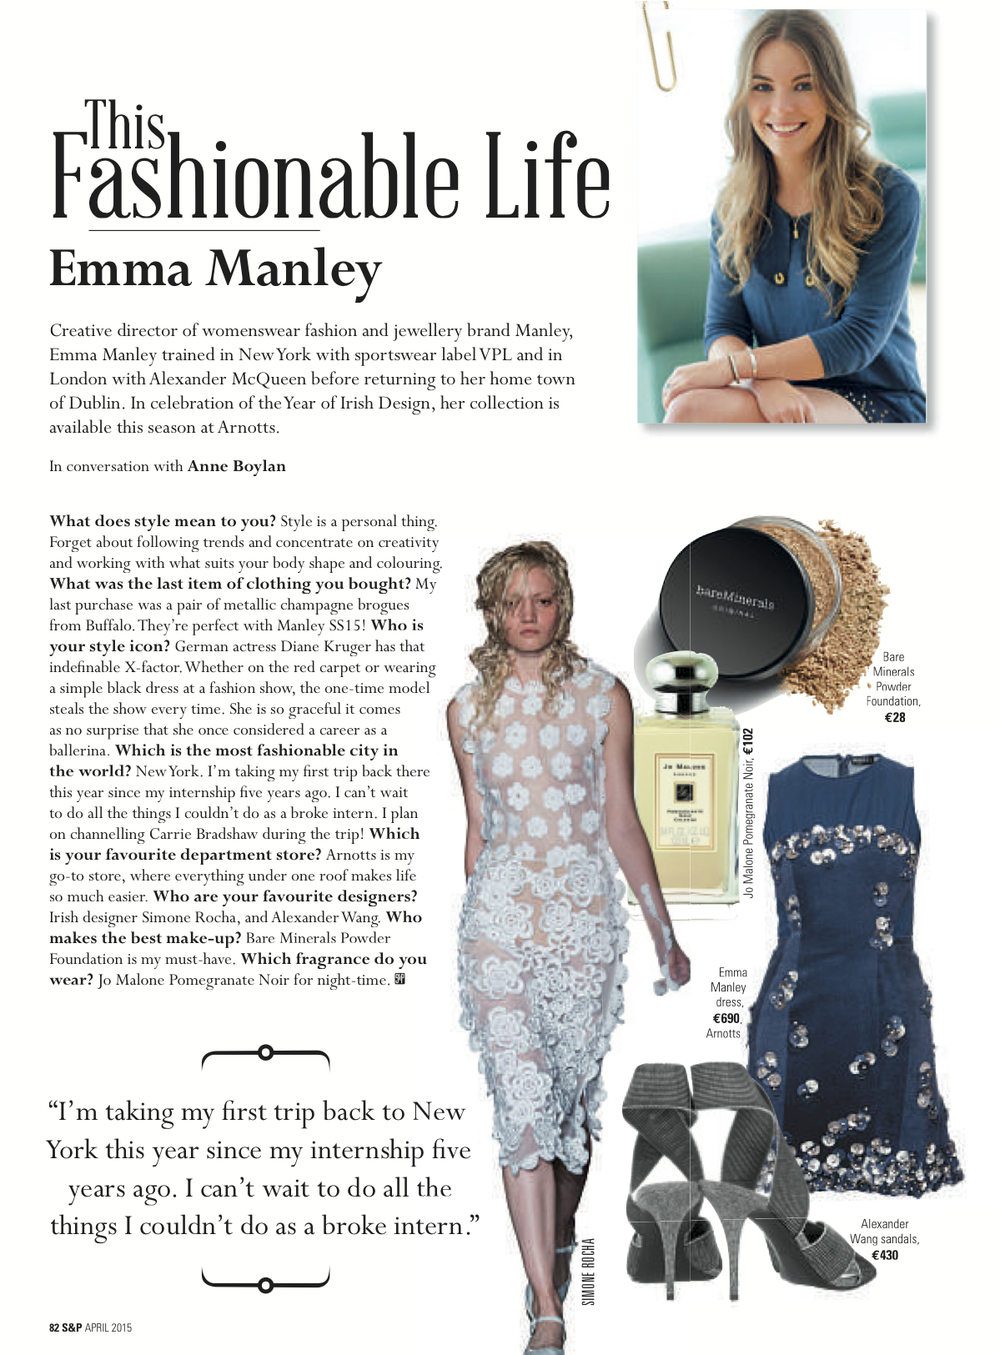 Social & Personal 'My Fashionable Life' - April 2015.jpg